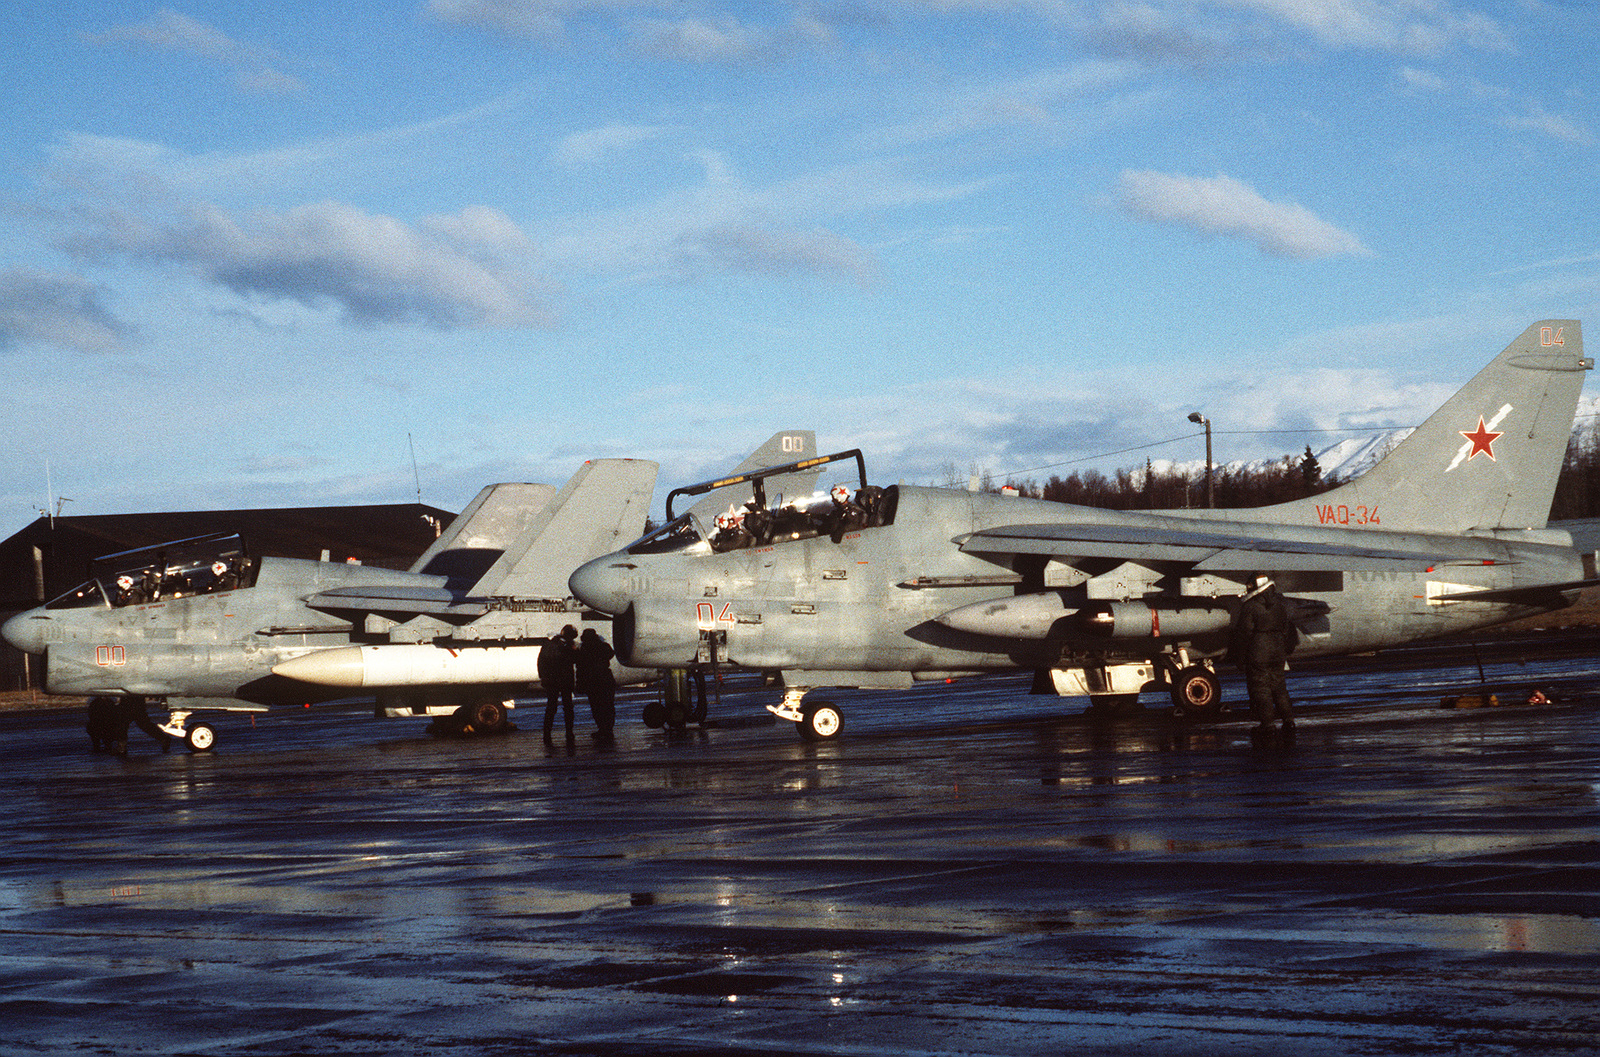 A view of two A-7 Corsair II aircraft on the ramp during the US 3rd